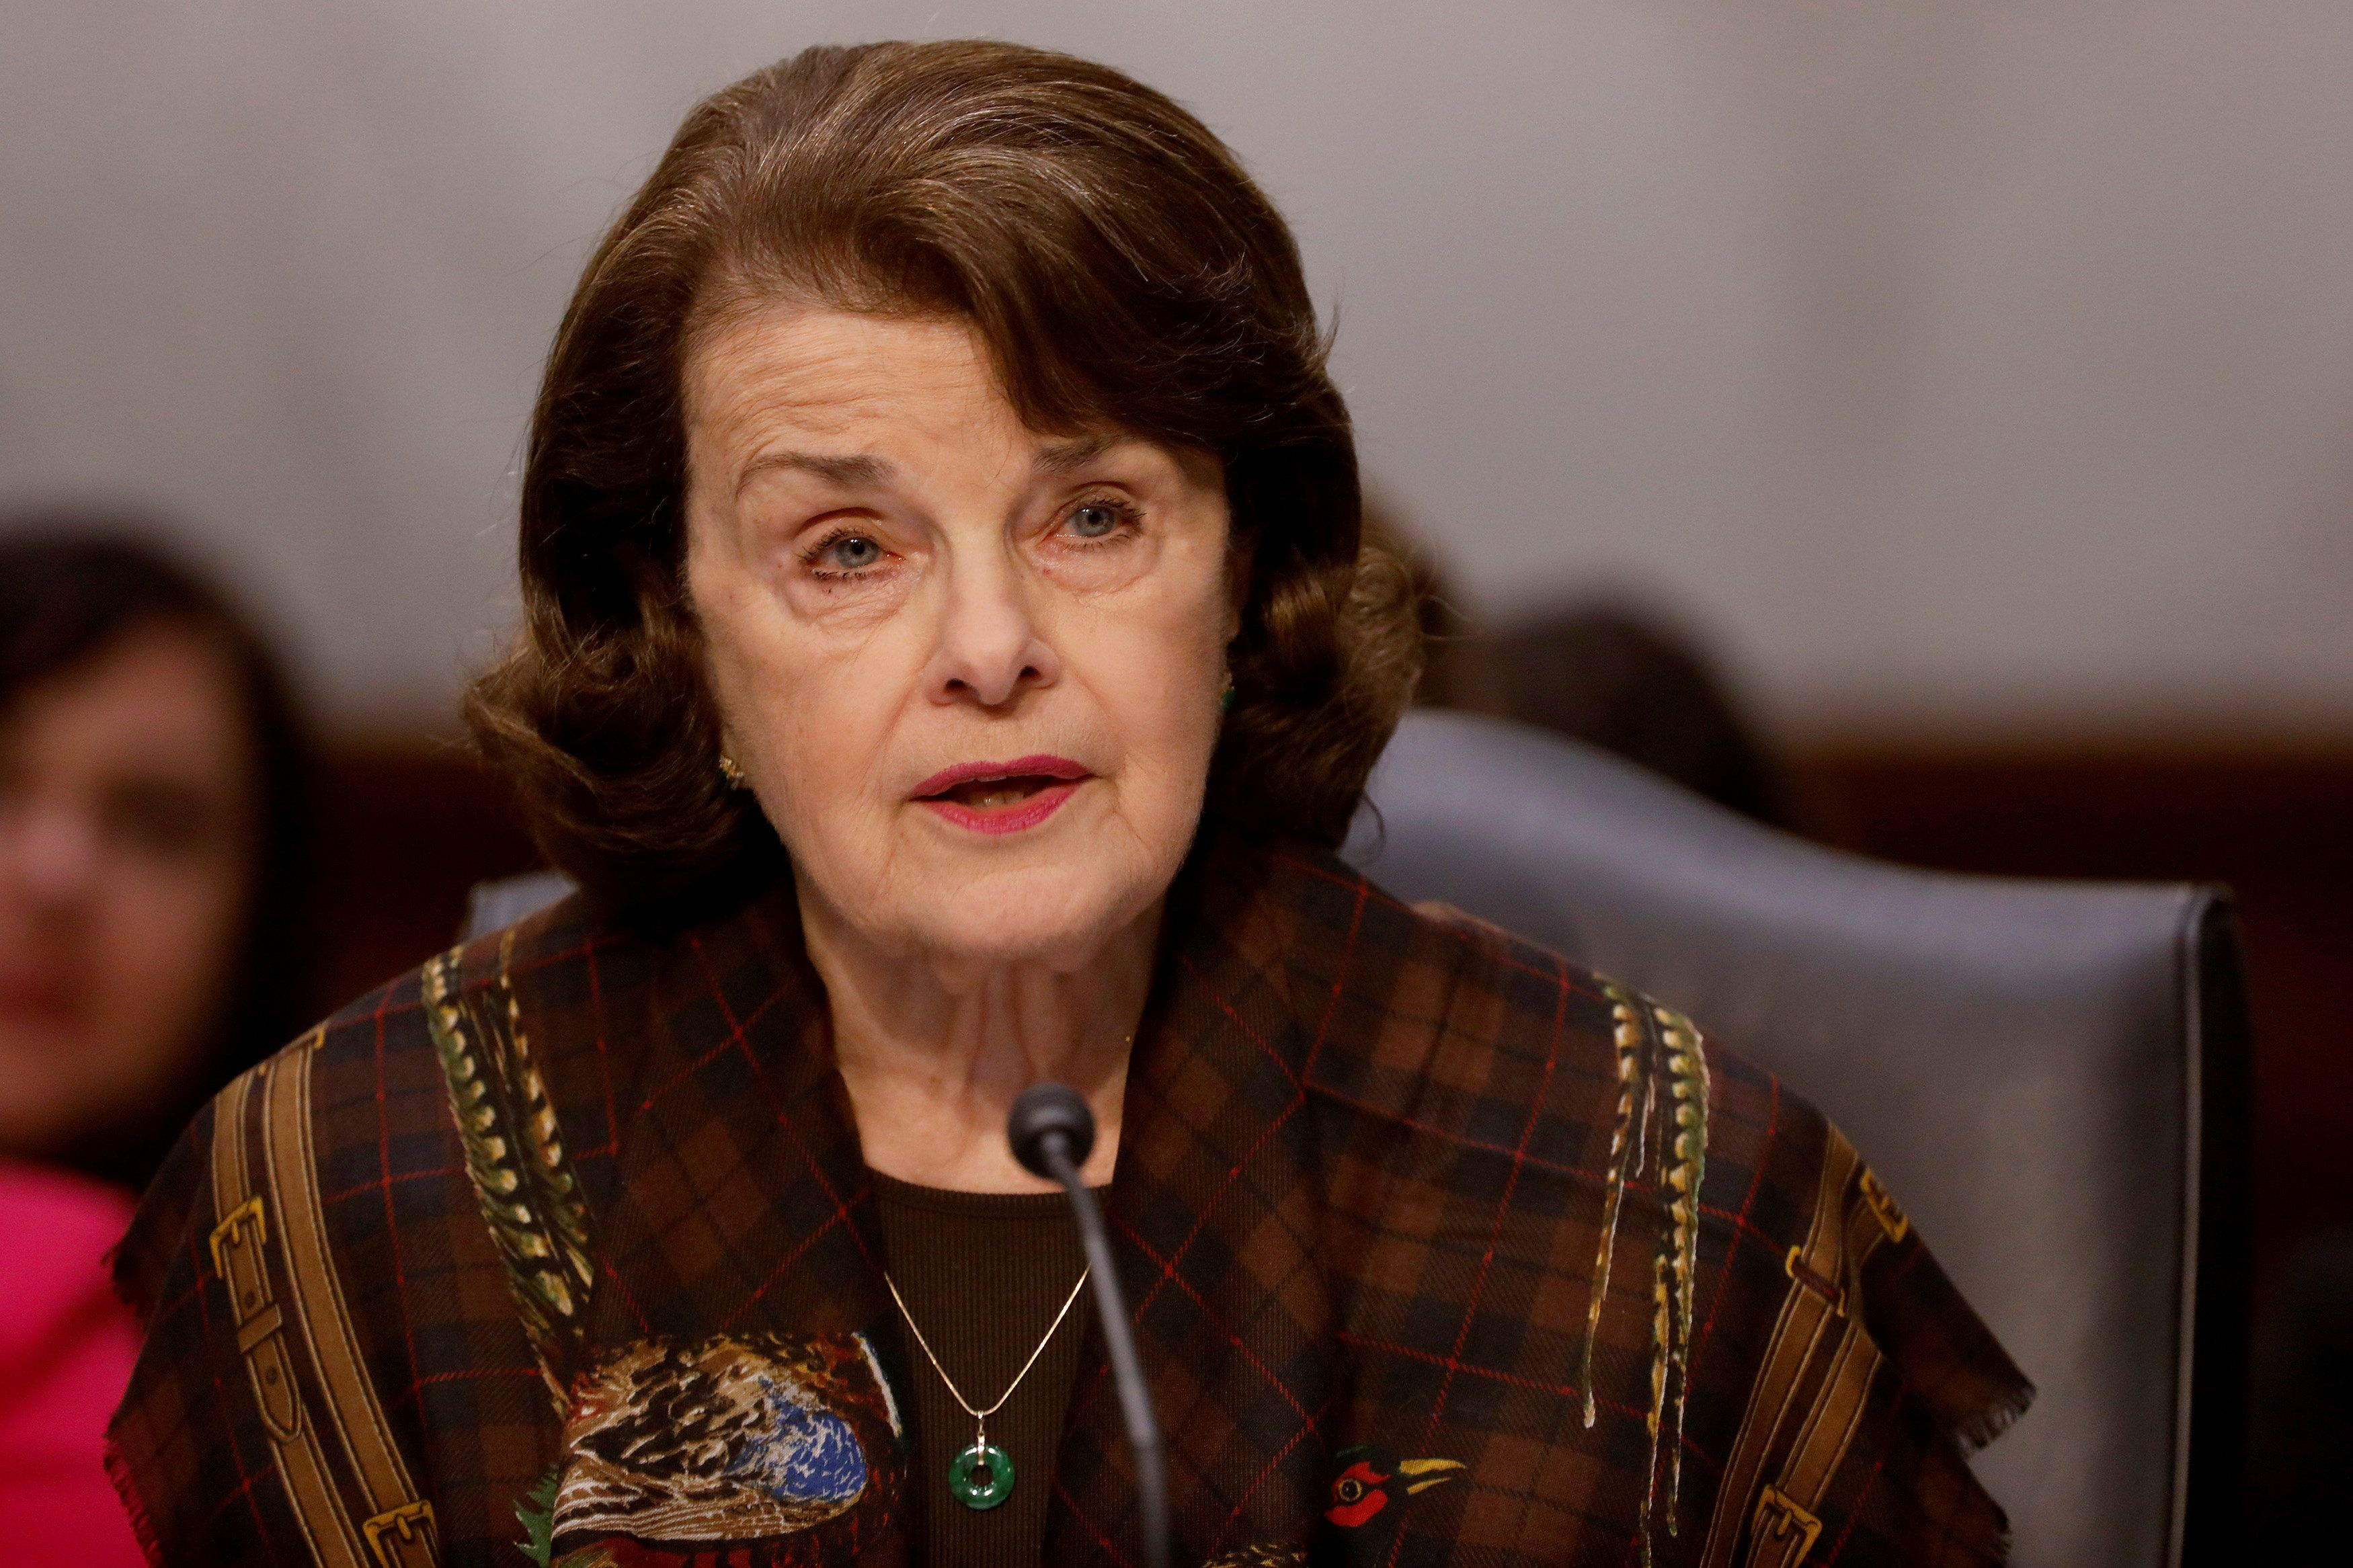 Ranking Member Sen. Dianne Feinstein (D-CA) speaks during a meeting of the Senate Judiciary Committee to discuss the nomination of Judge Neil Gorsuch to the Supreme Court on Capitol Hill in Washington, D.C., U.S., April 3, 2017. REUTERS/Aaron P. Bernstein